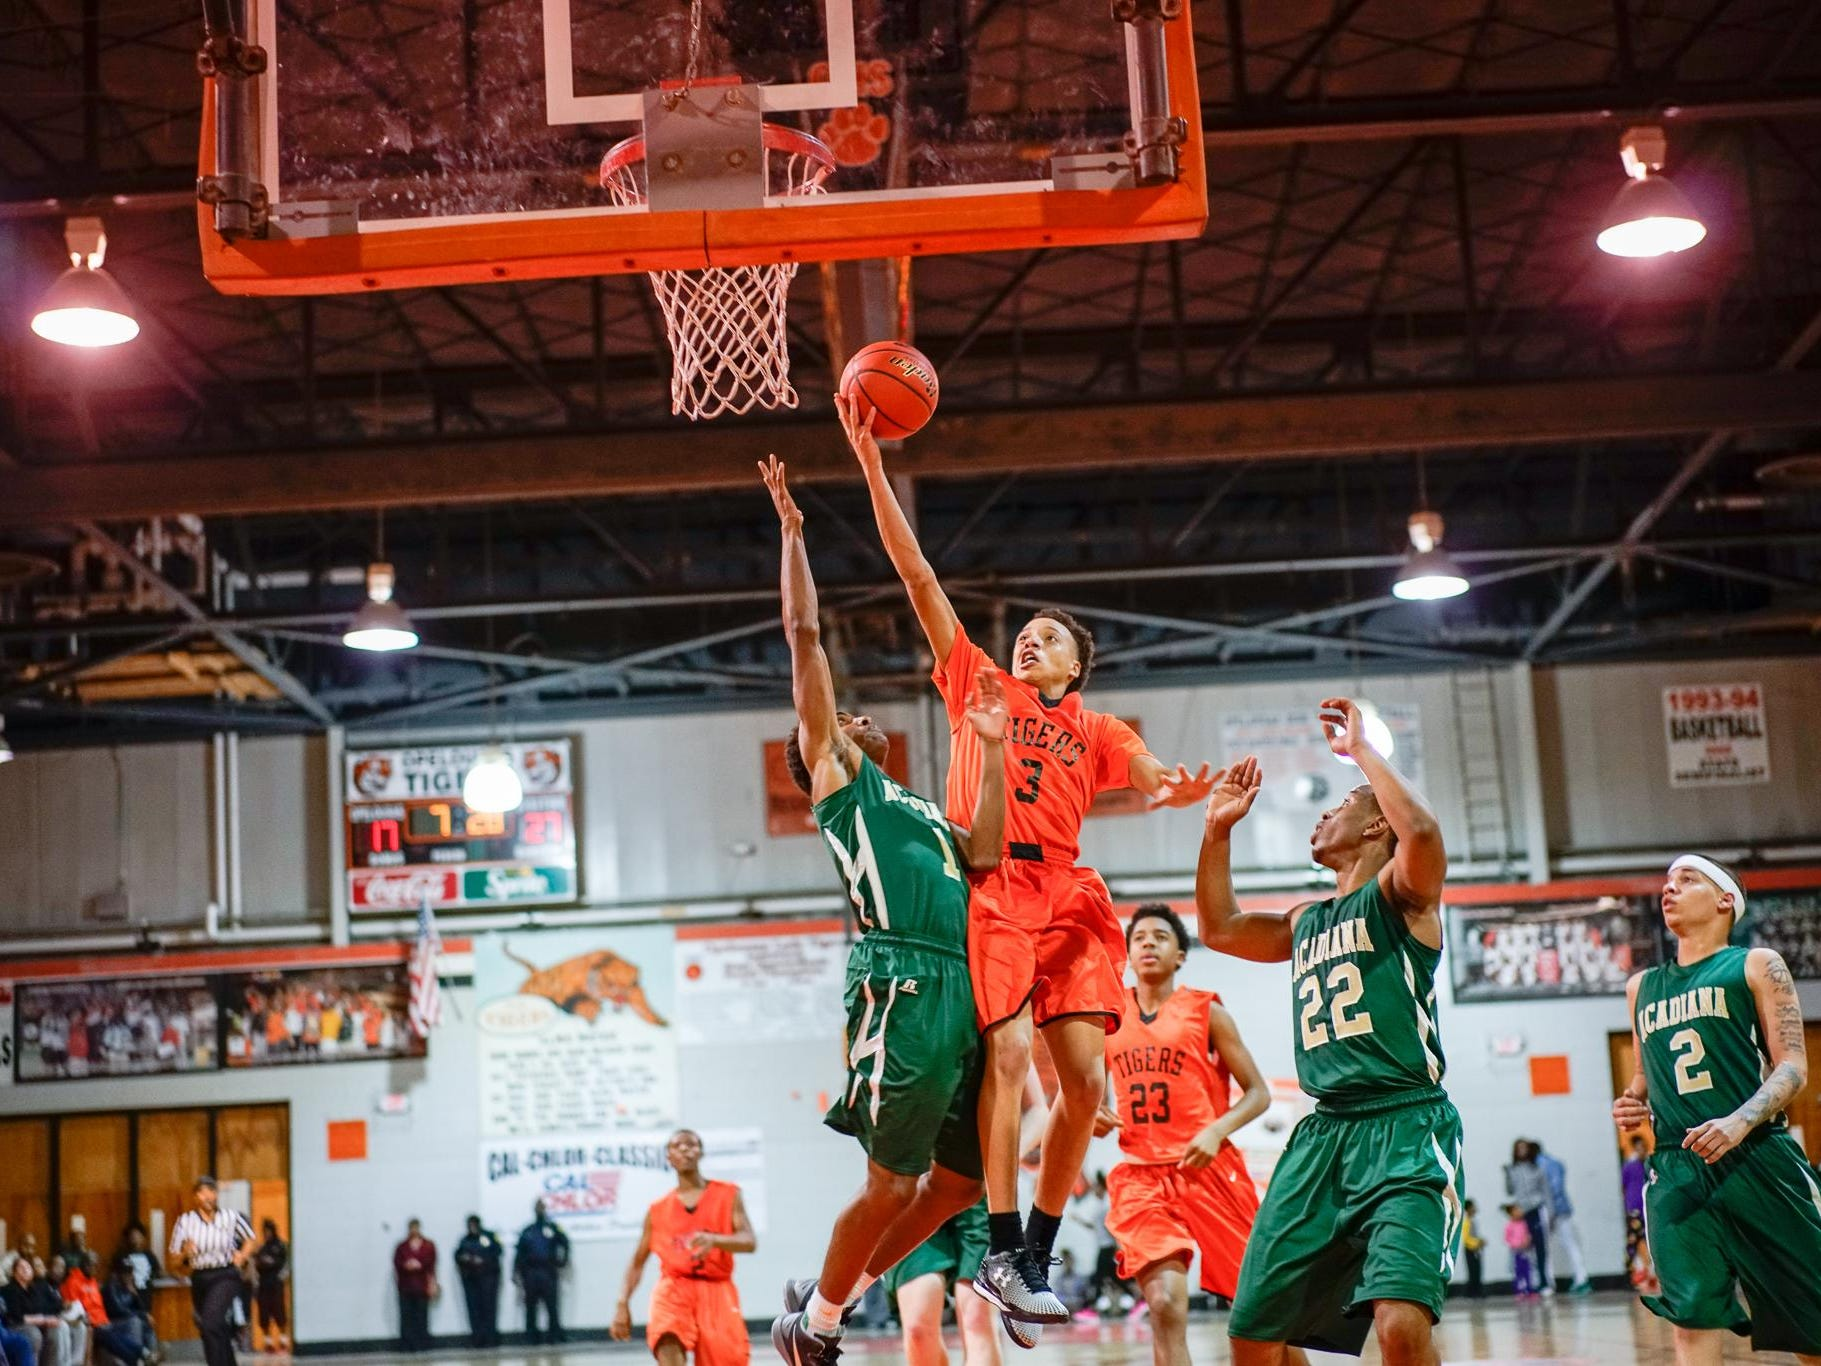 Opelousas High is shown in a recent game against Acadiana High. The Tigers' press was too much for North Central to handle Tuesday, as OHS won 65-50.